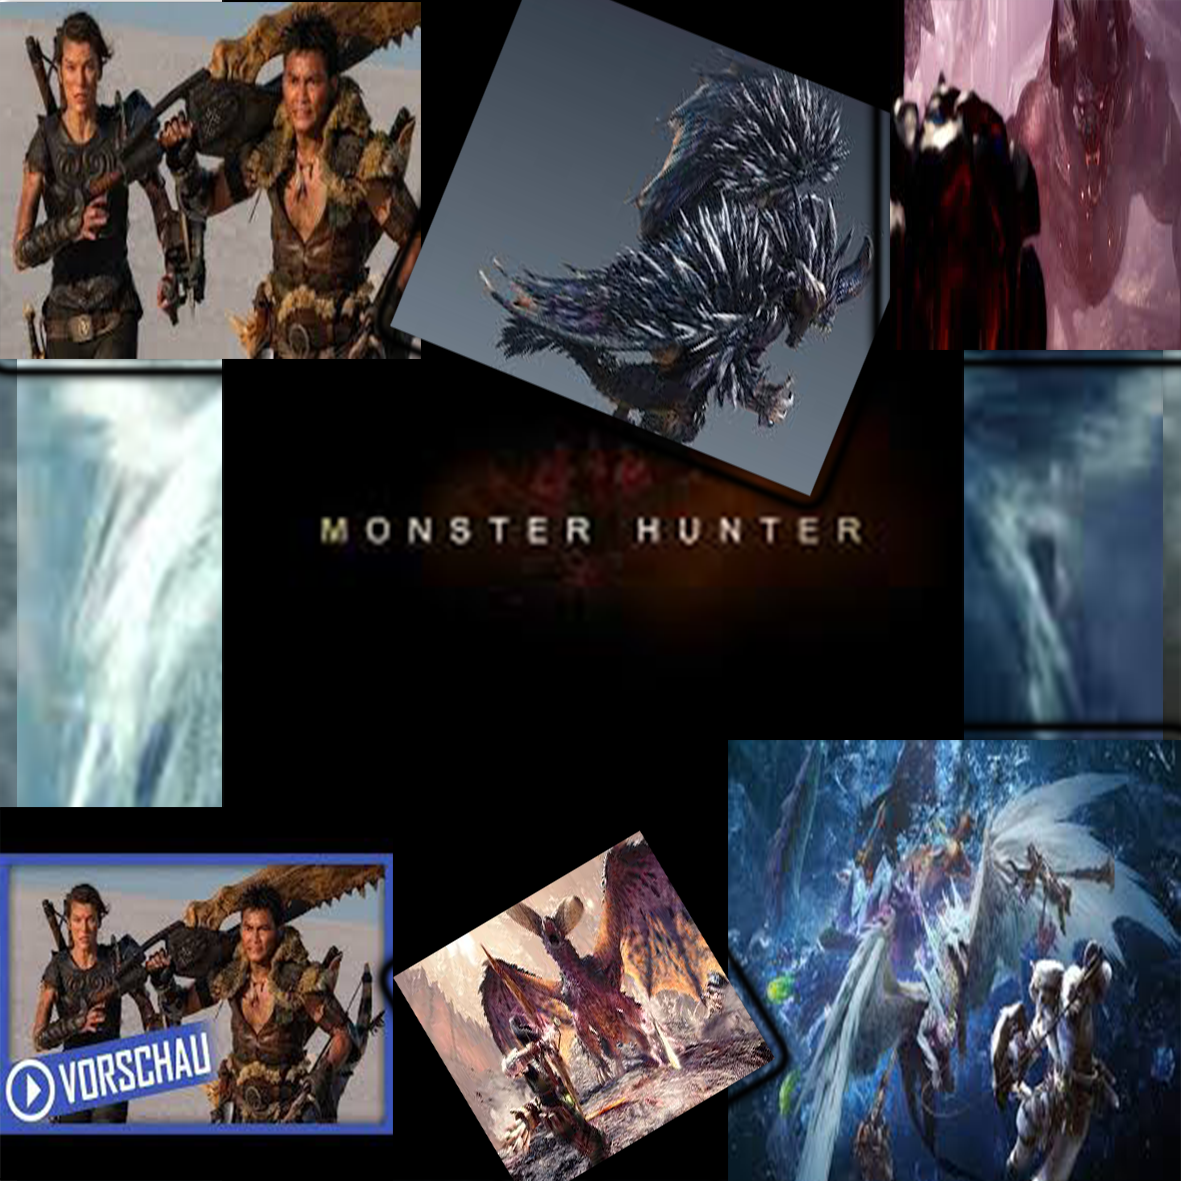 Five What By Five What Milla Jovovich And Tony Jaa Monster Hunter In 2020 Monster Hunter Movie Milla Jovovich Monster Hunter